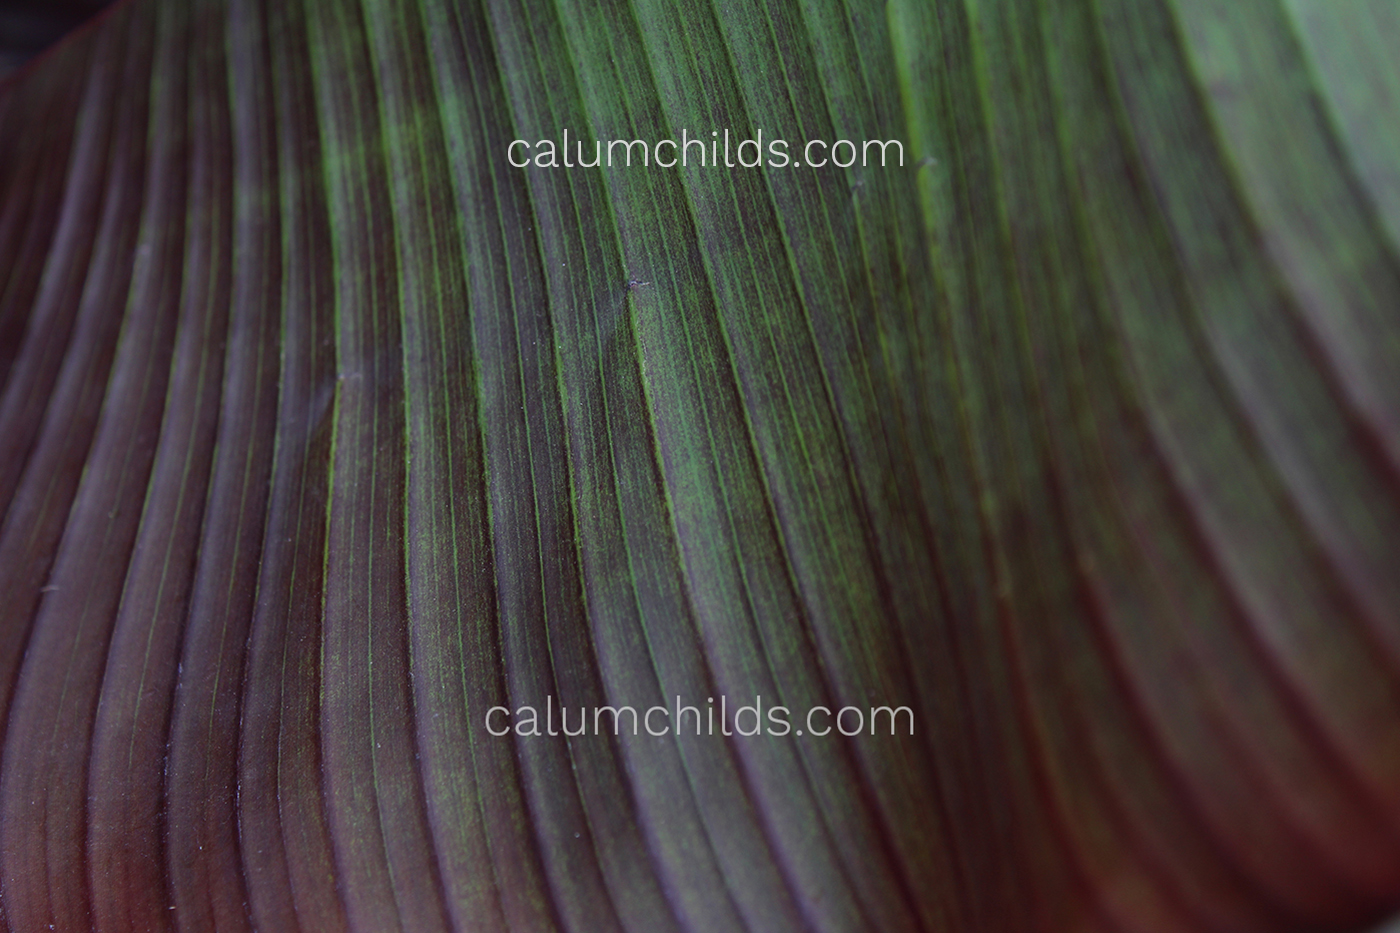 A close-up of a large purple/green leaf.